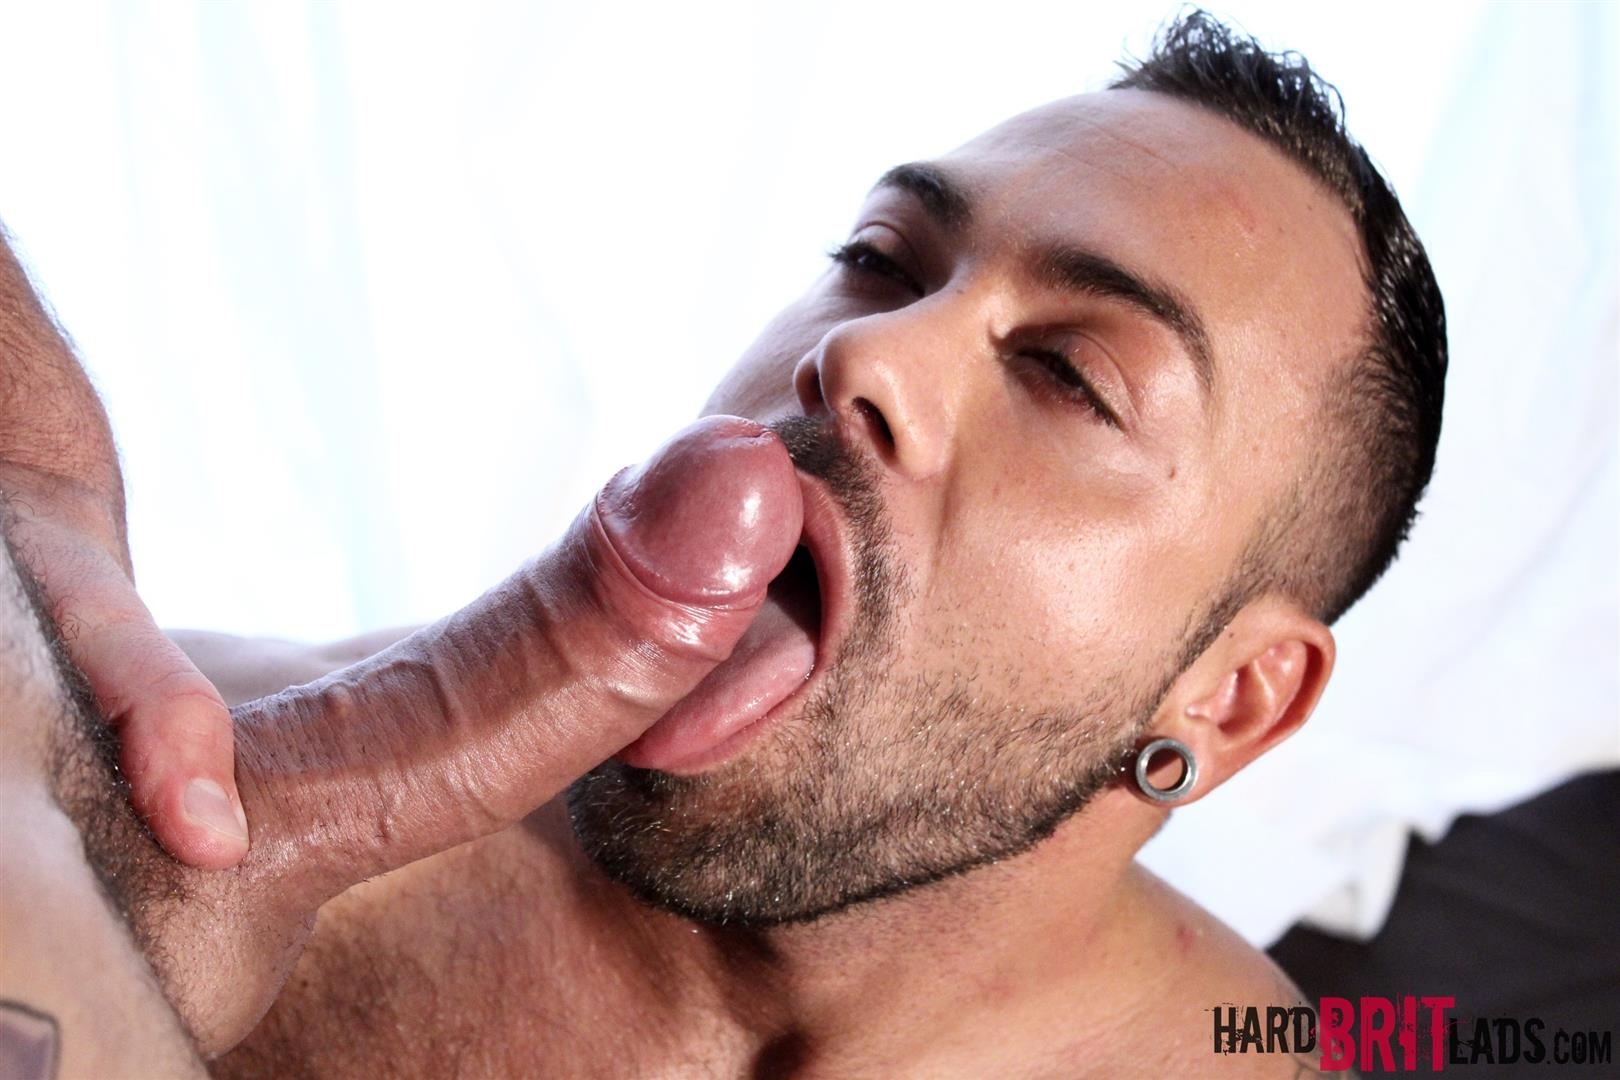 Hard-Brit-Lads-Sergi-Rodriguez-and-Letterio-Amadeo-Big-Uncut-Cock-Fucking-Amateur-Gay-Porn-06 Hairy British Muscle Hunks Fucking With Their Big Uncut Cocks